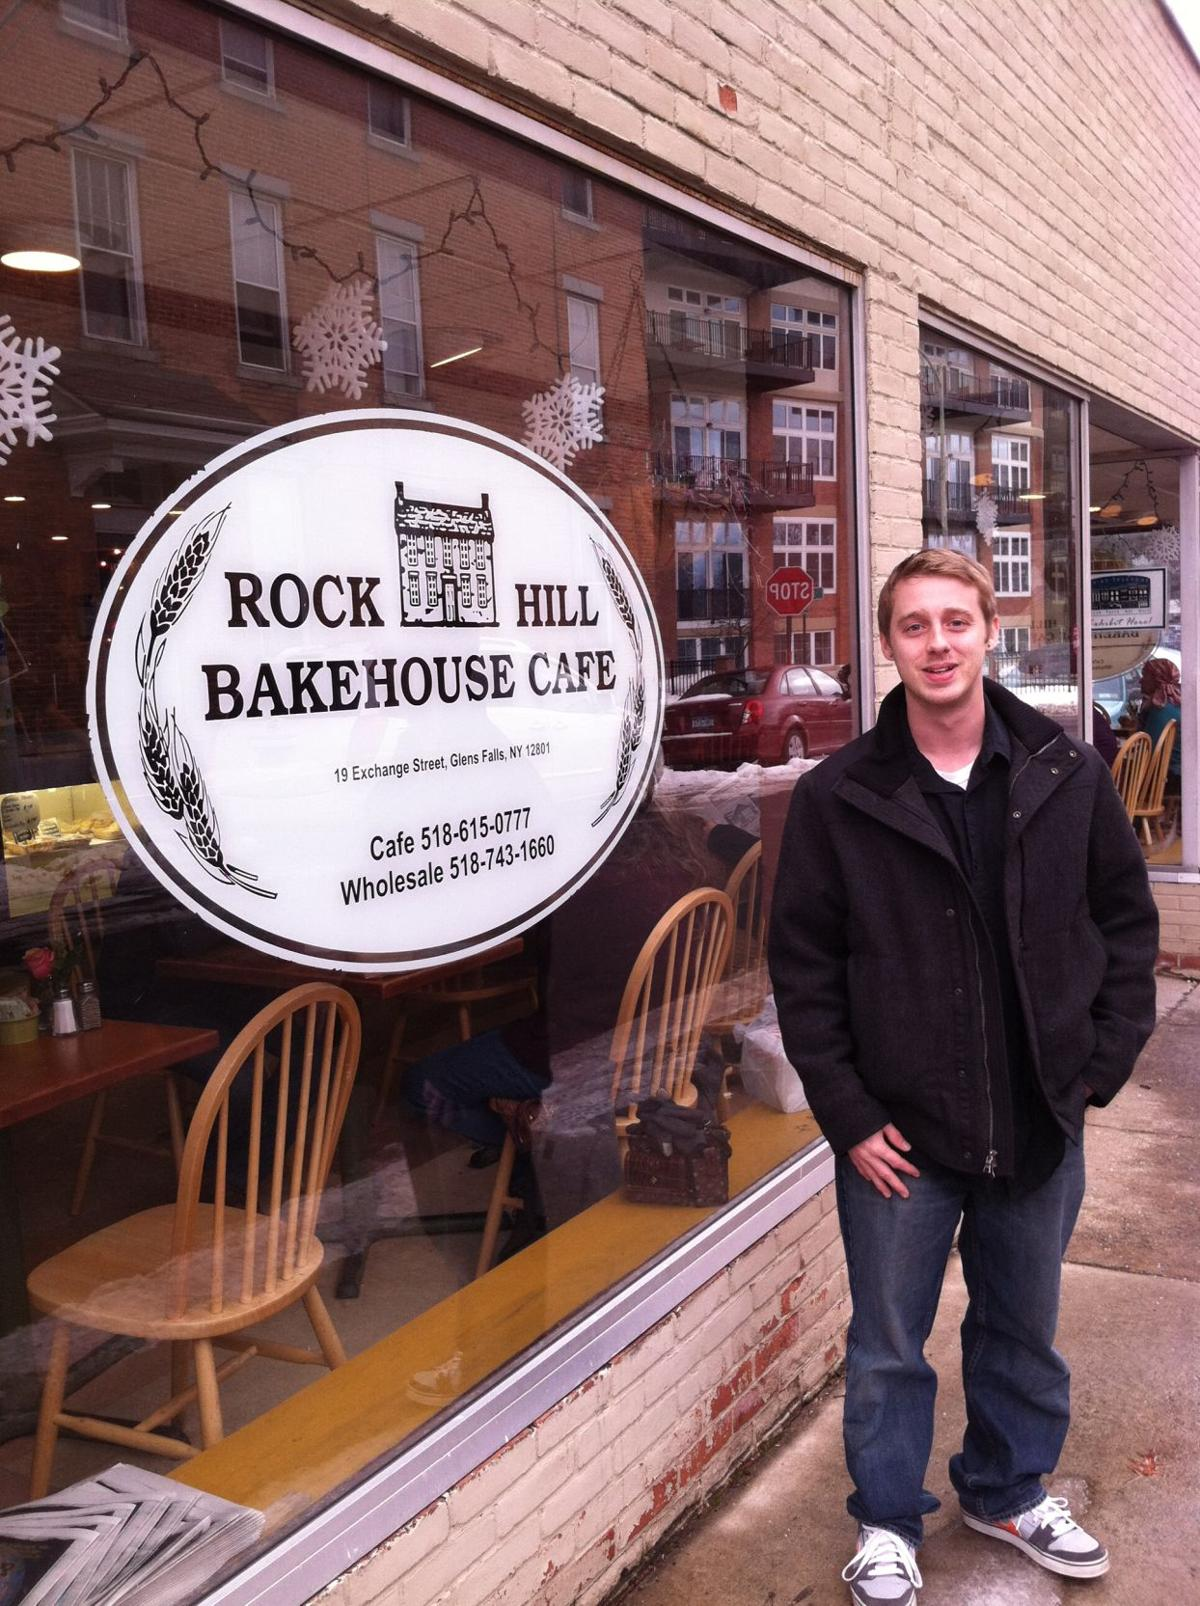 Rock Hill Bakehouse Cafe Glens Falls Ny